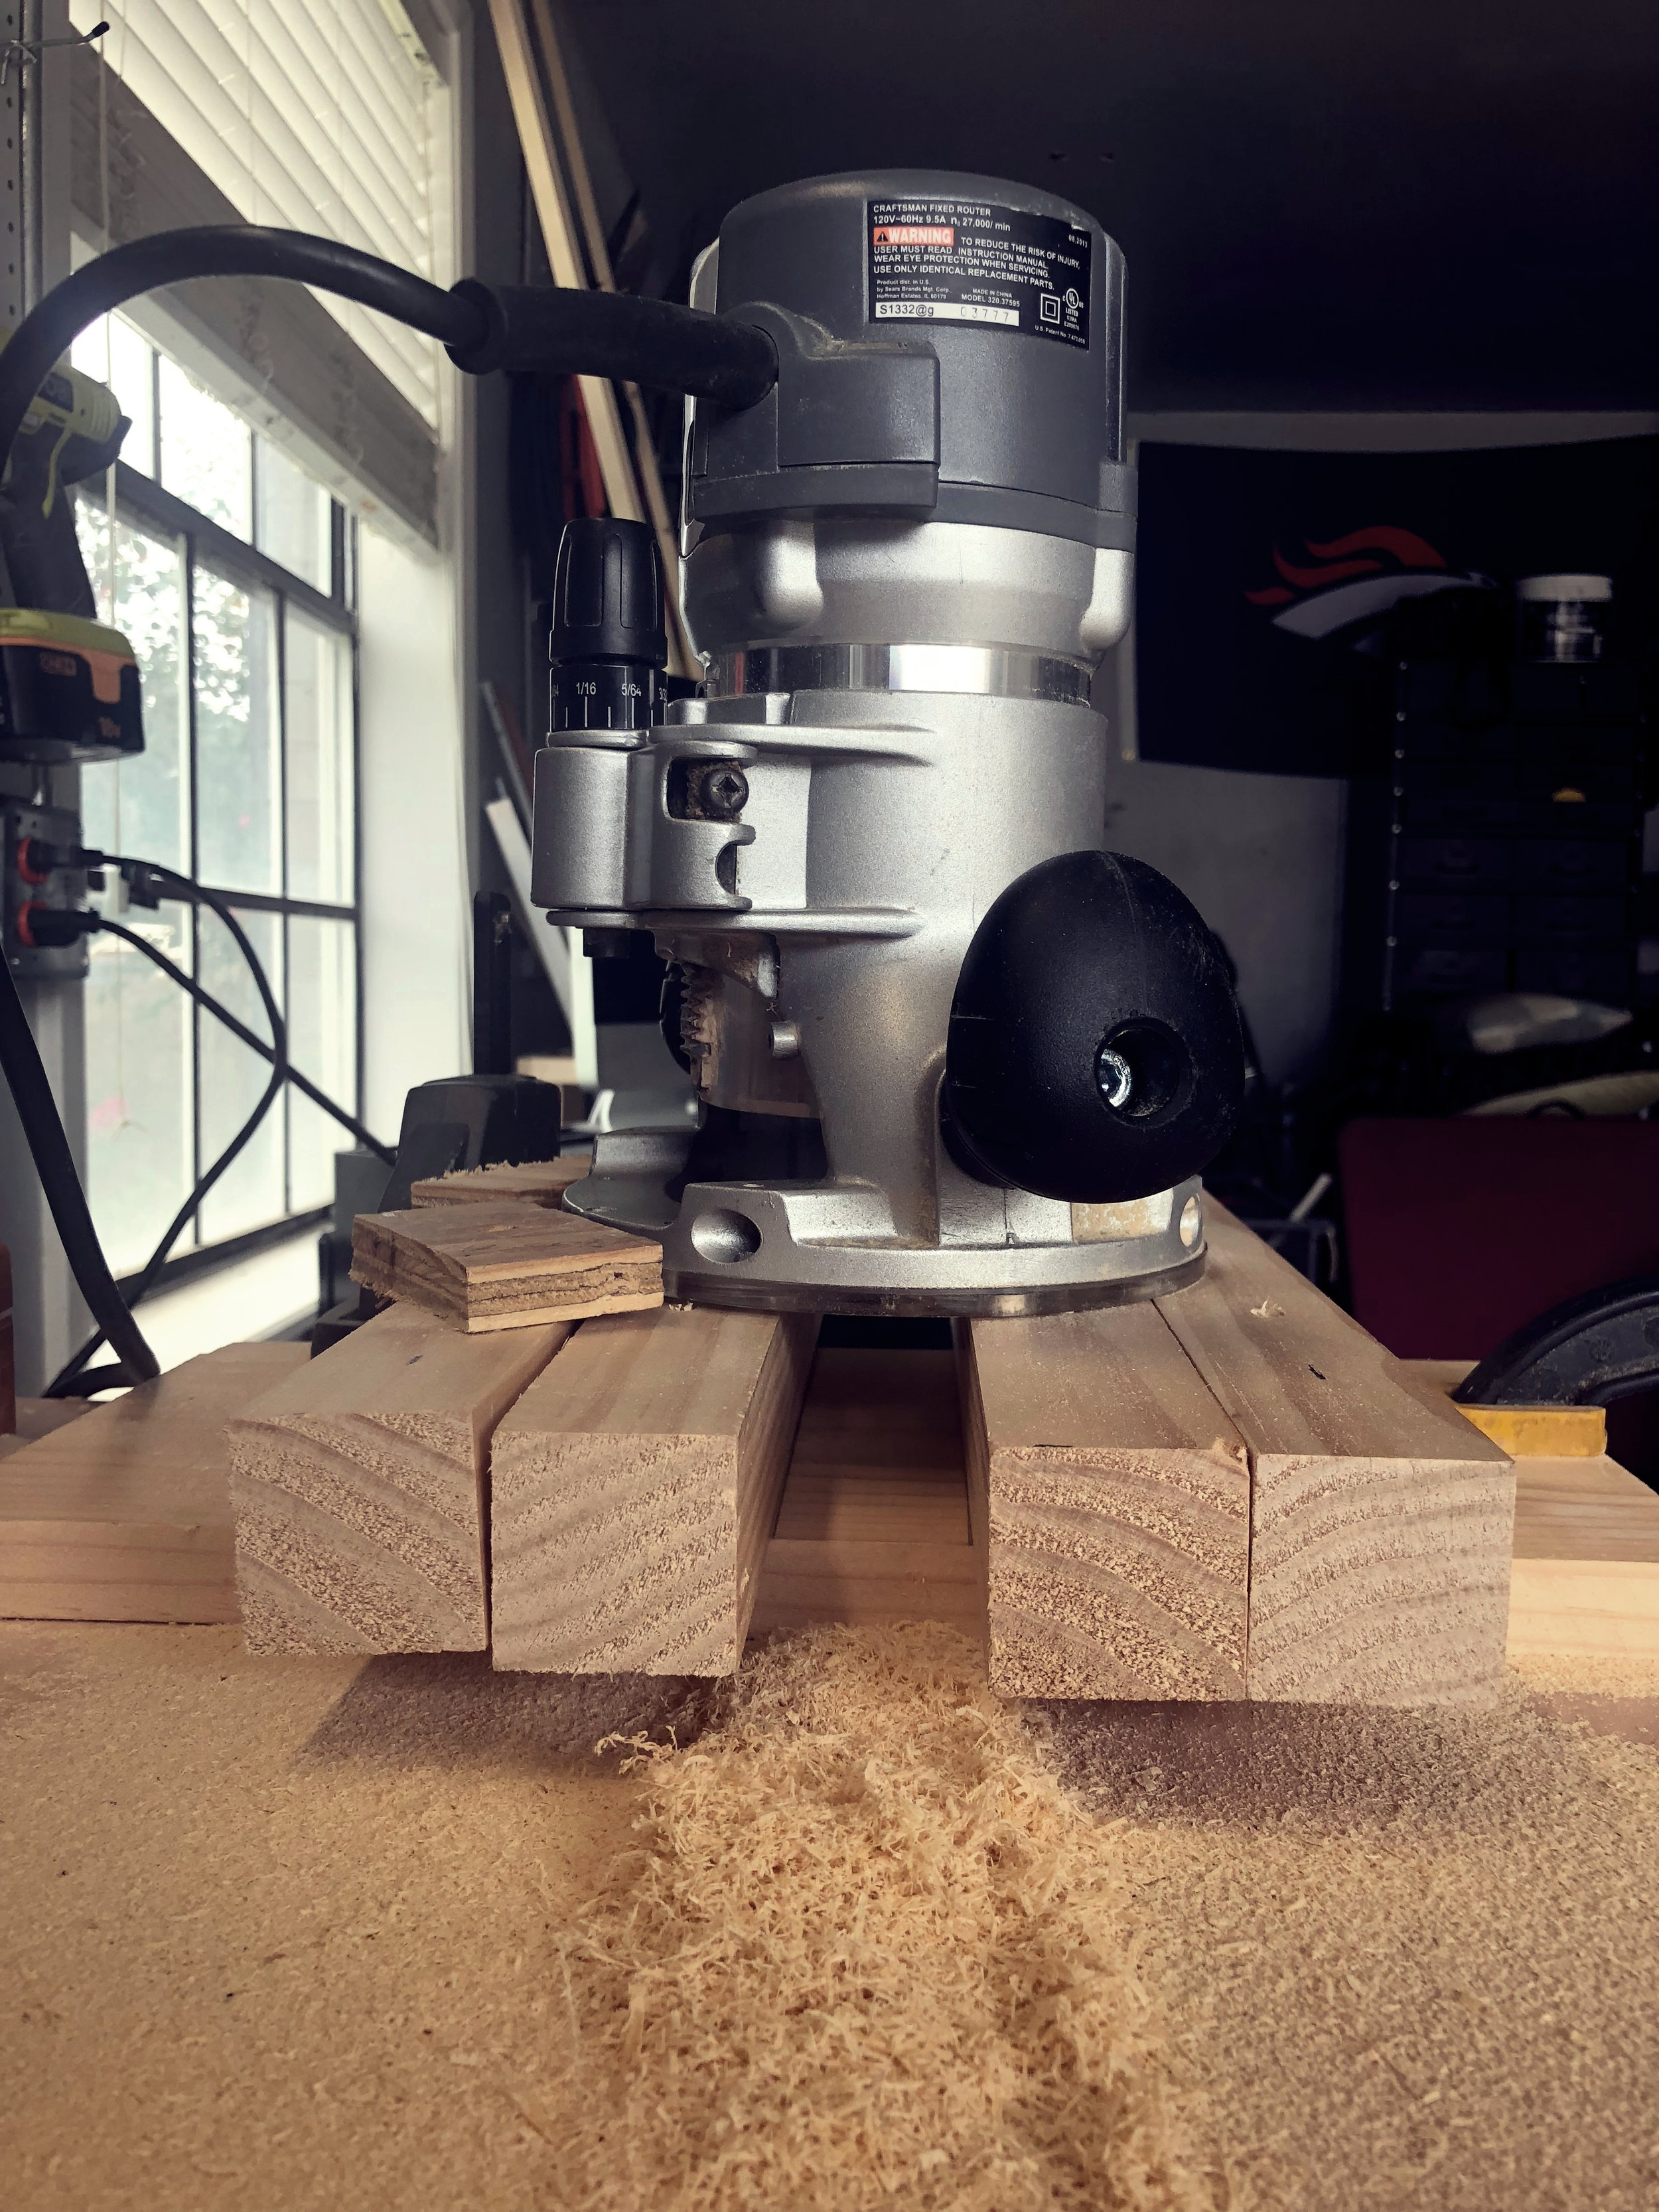 Router jig. Ugly but effective.